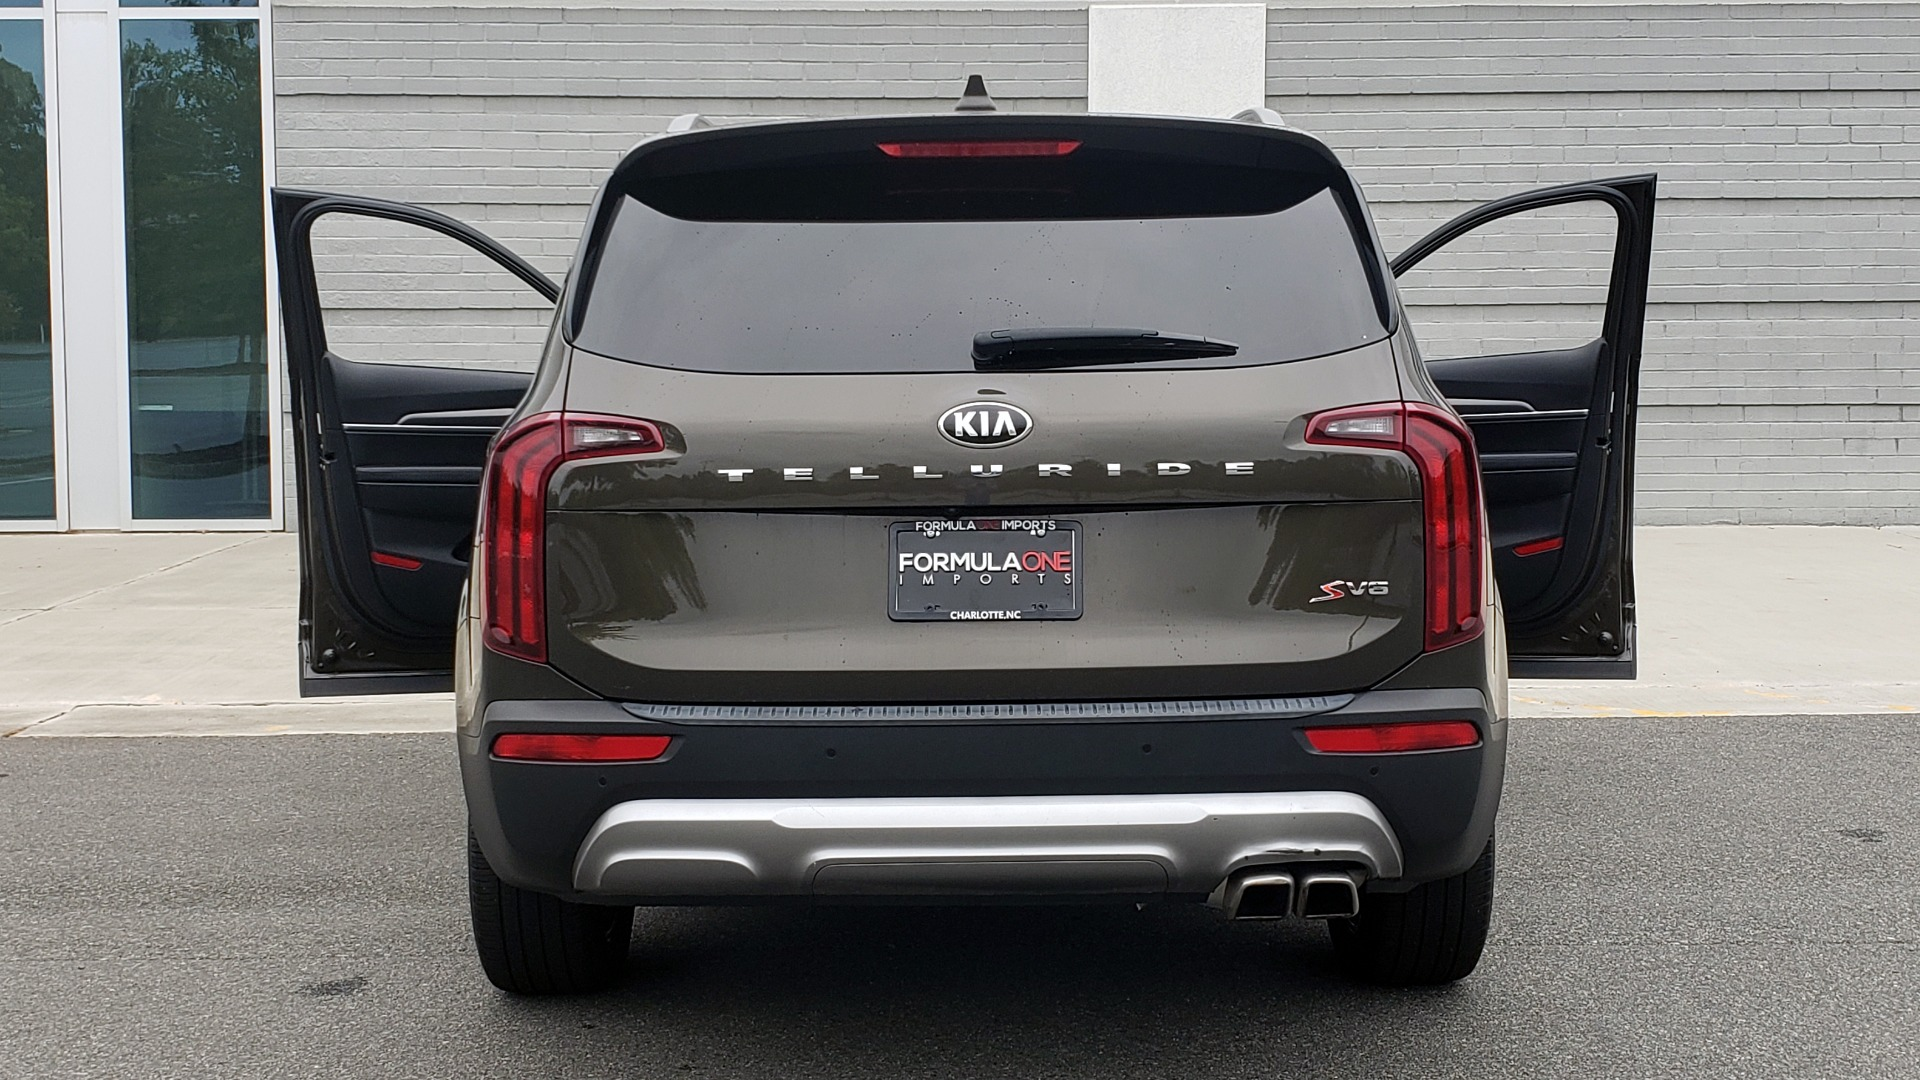 Used 2020 Kia TELLURIDE S 3.8L / FWD / 8-SPD AUTO / SUNROOF / REARVIEW / 20INCH WHEELS for sale $41,595 at Formula Imports in Charlotte NC 28227 30